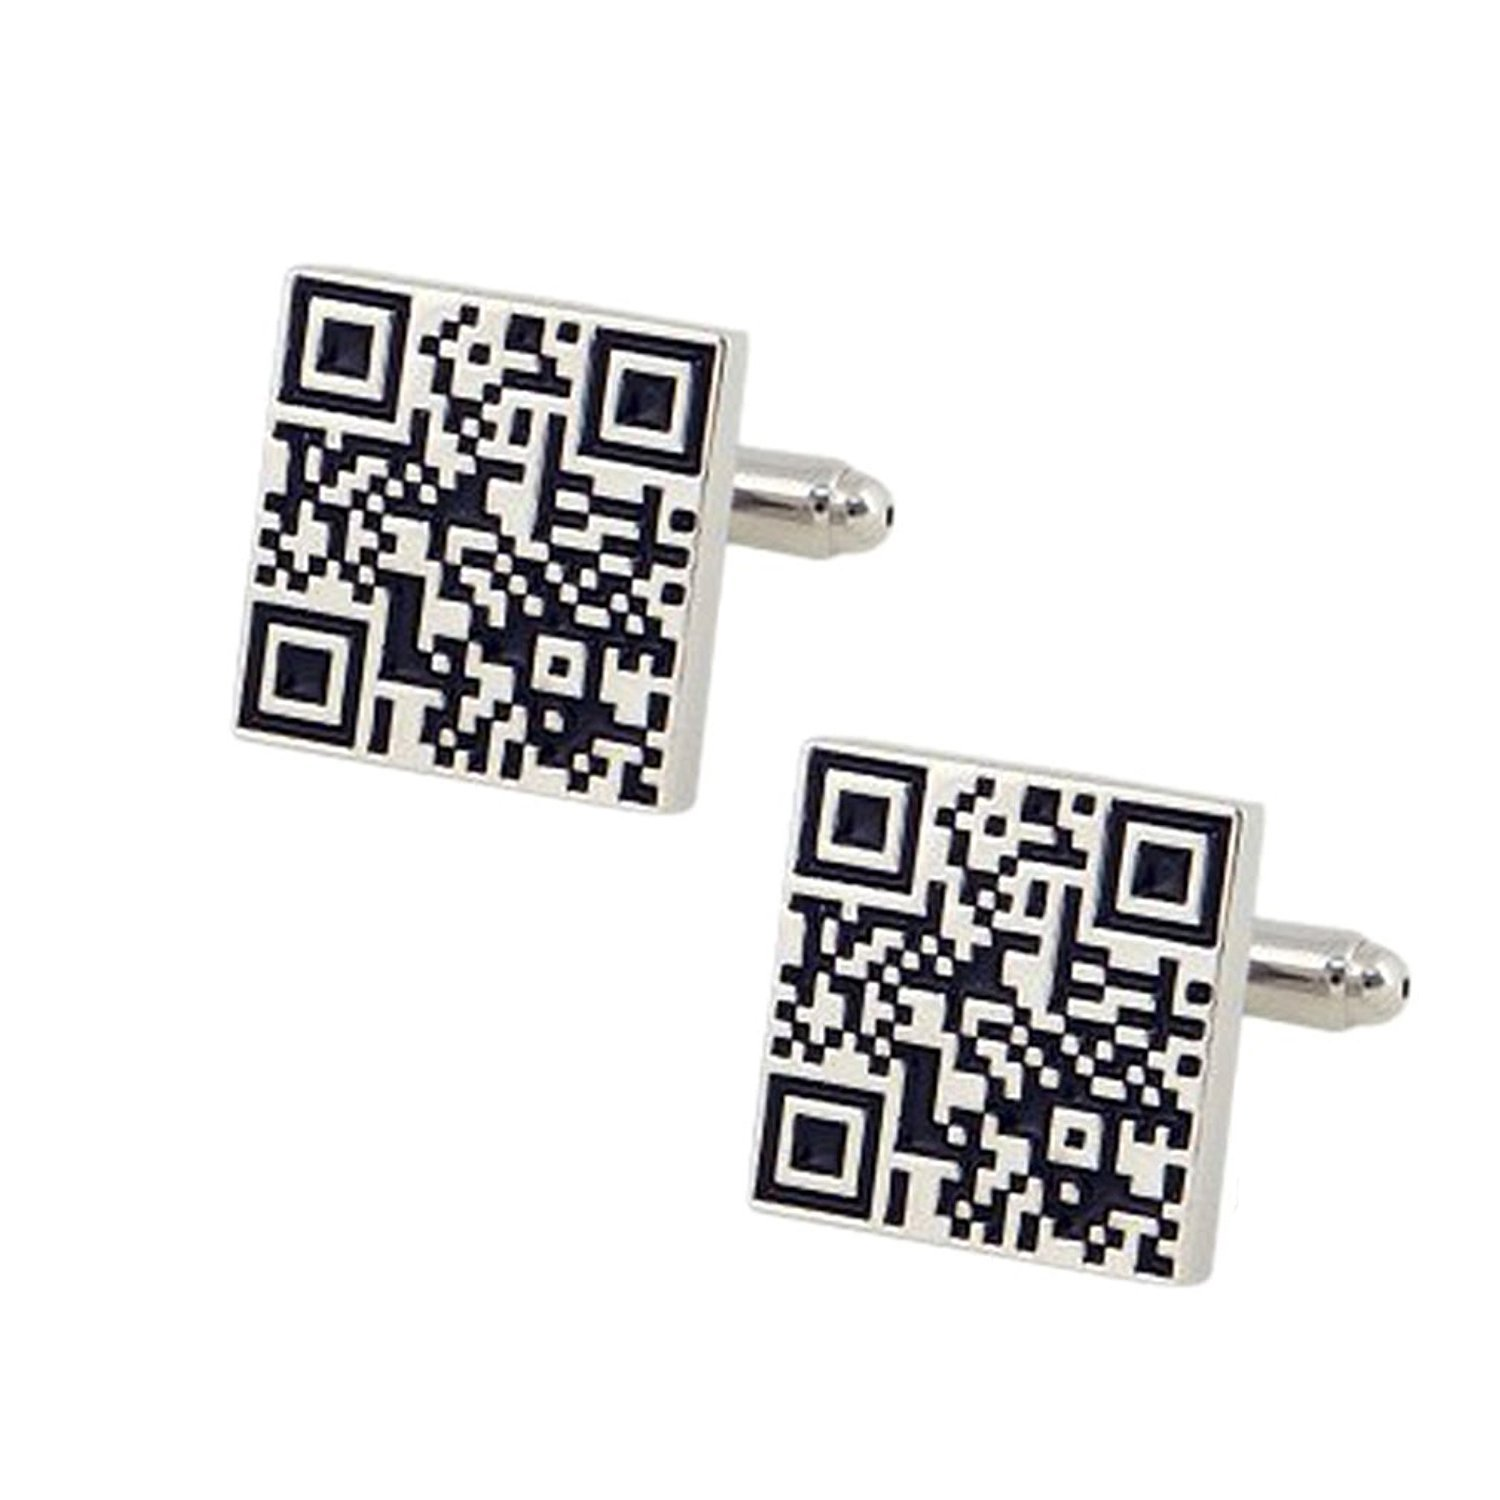 The Jewelbox QR Code White & Black Rhodium Brass Cufflink Formal Shirt Blazer Suit Cufflinks Pair Men Gift Box